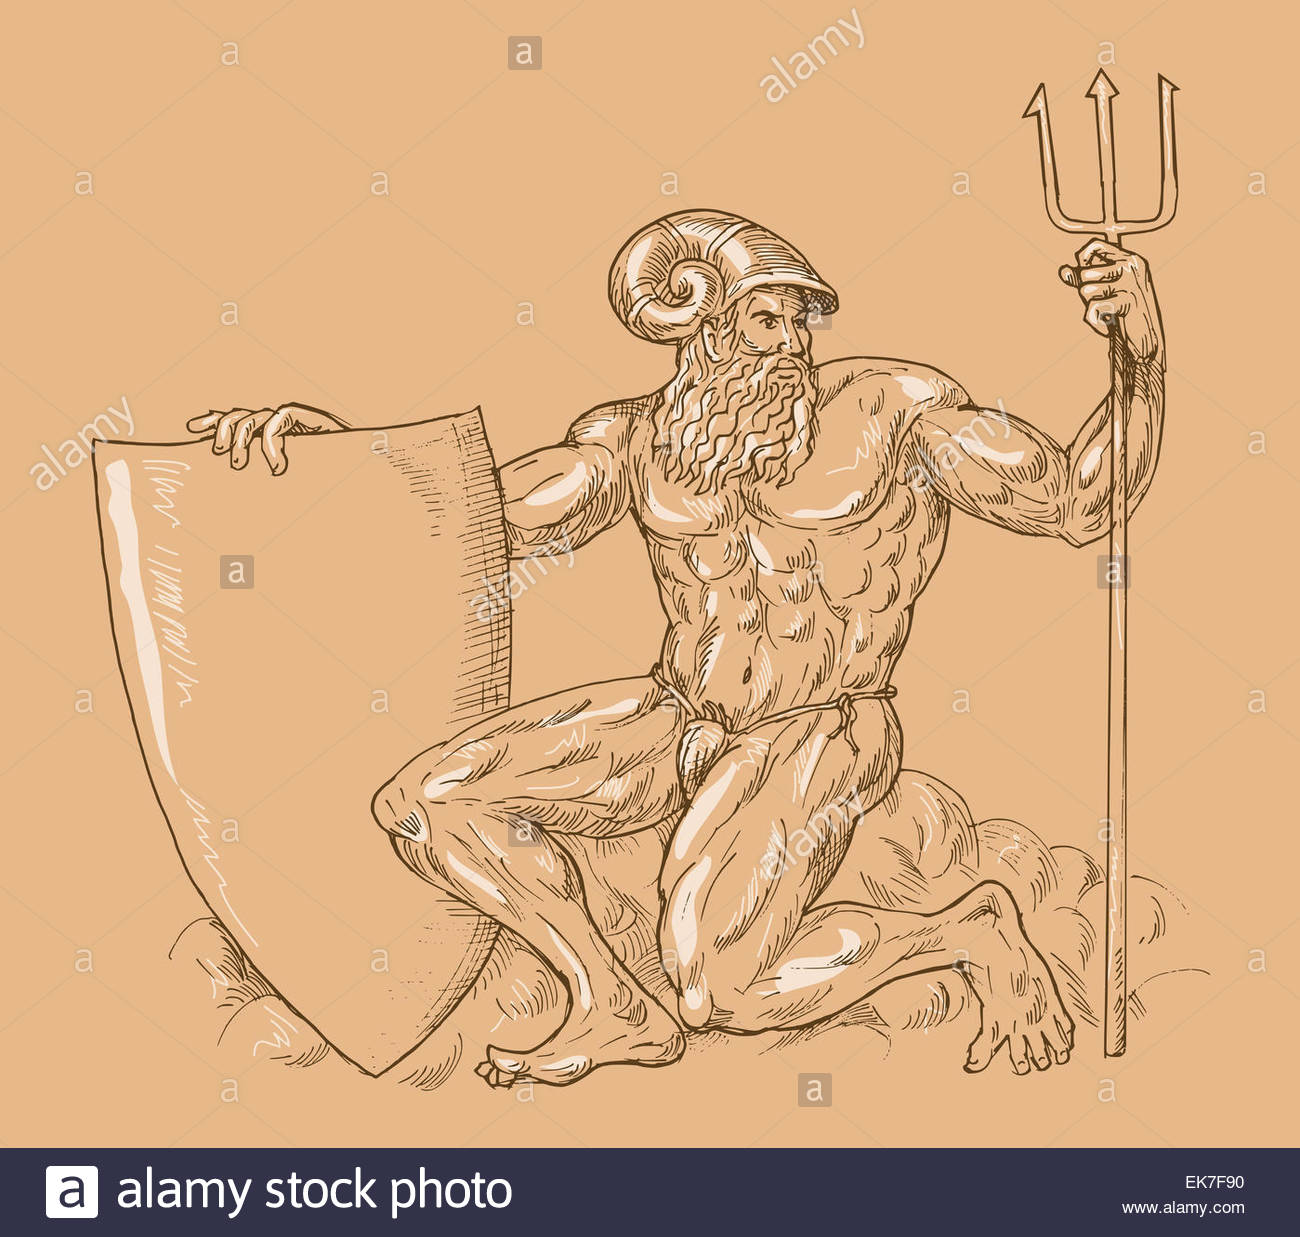 1300x1237 Roman God Neptune Or Poseidon With Trident And Shield Stock Photo